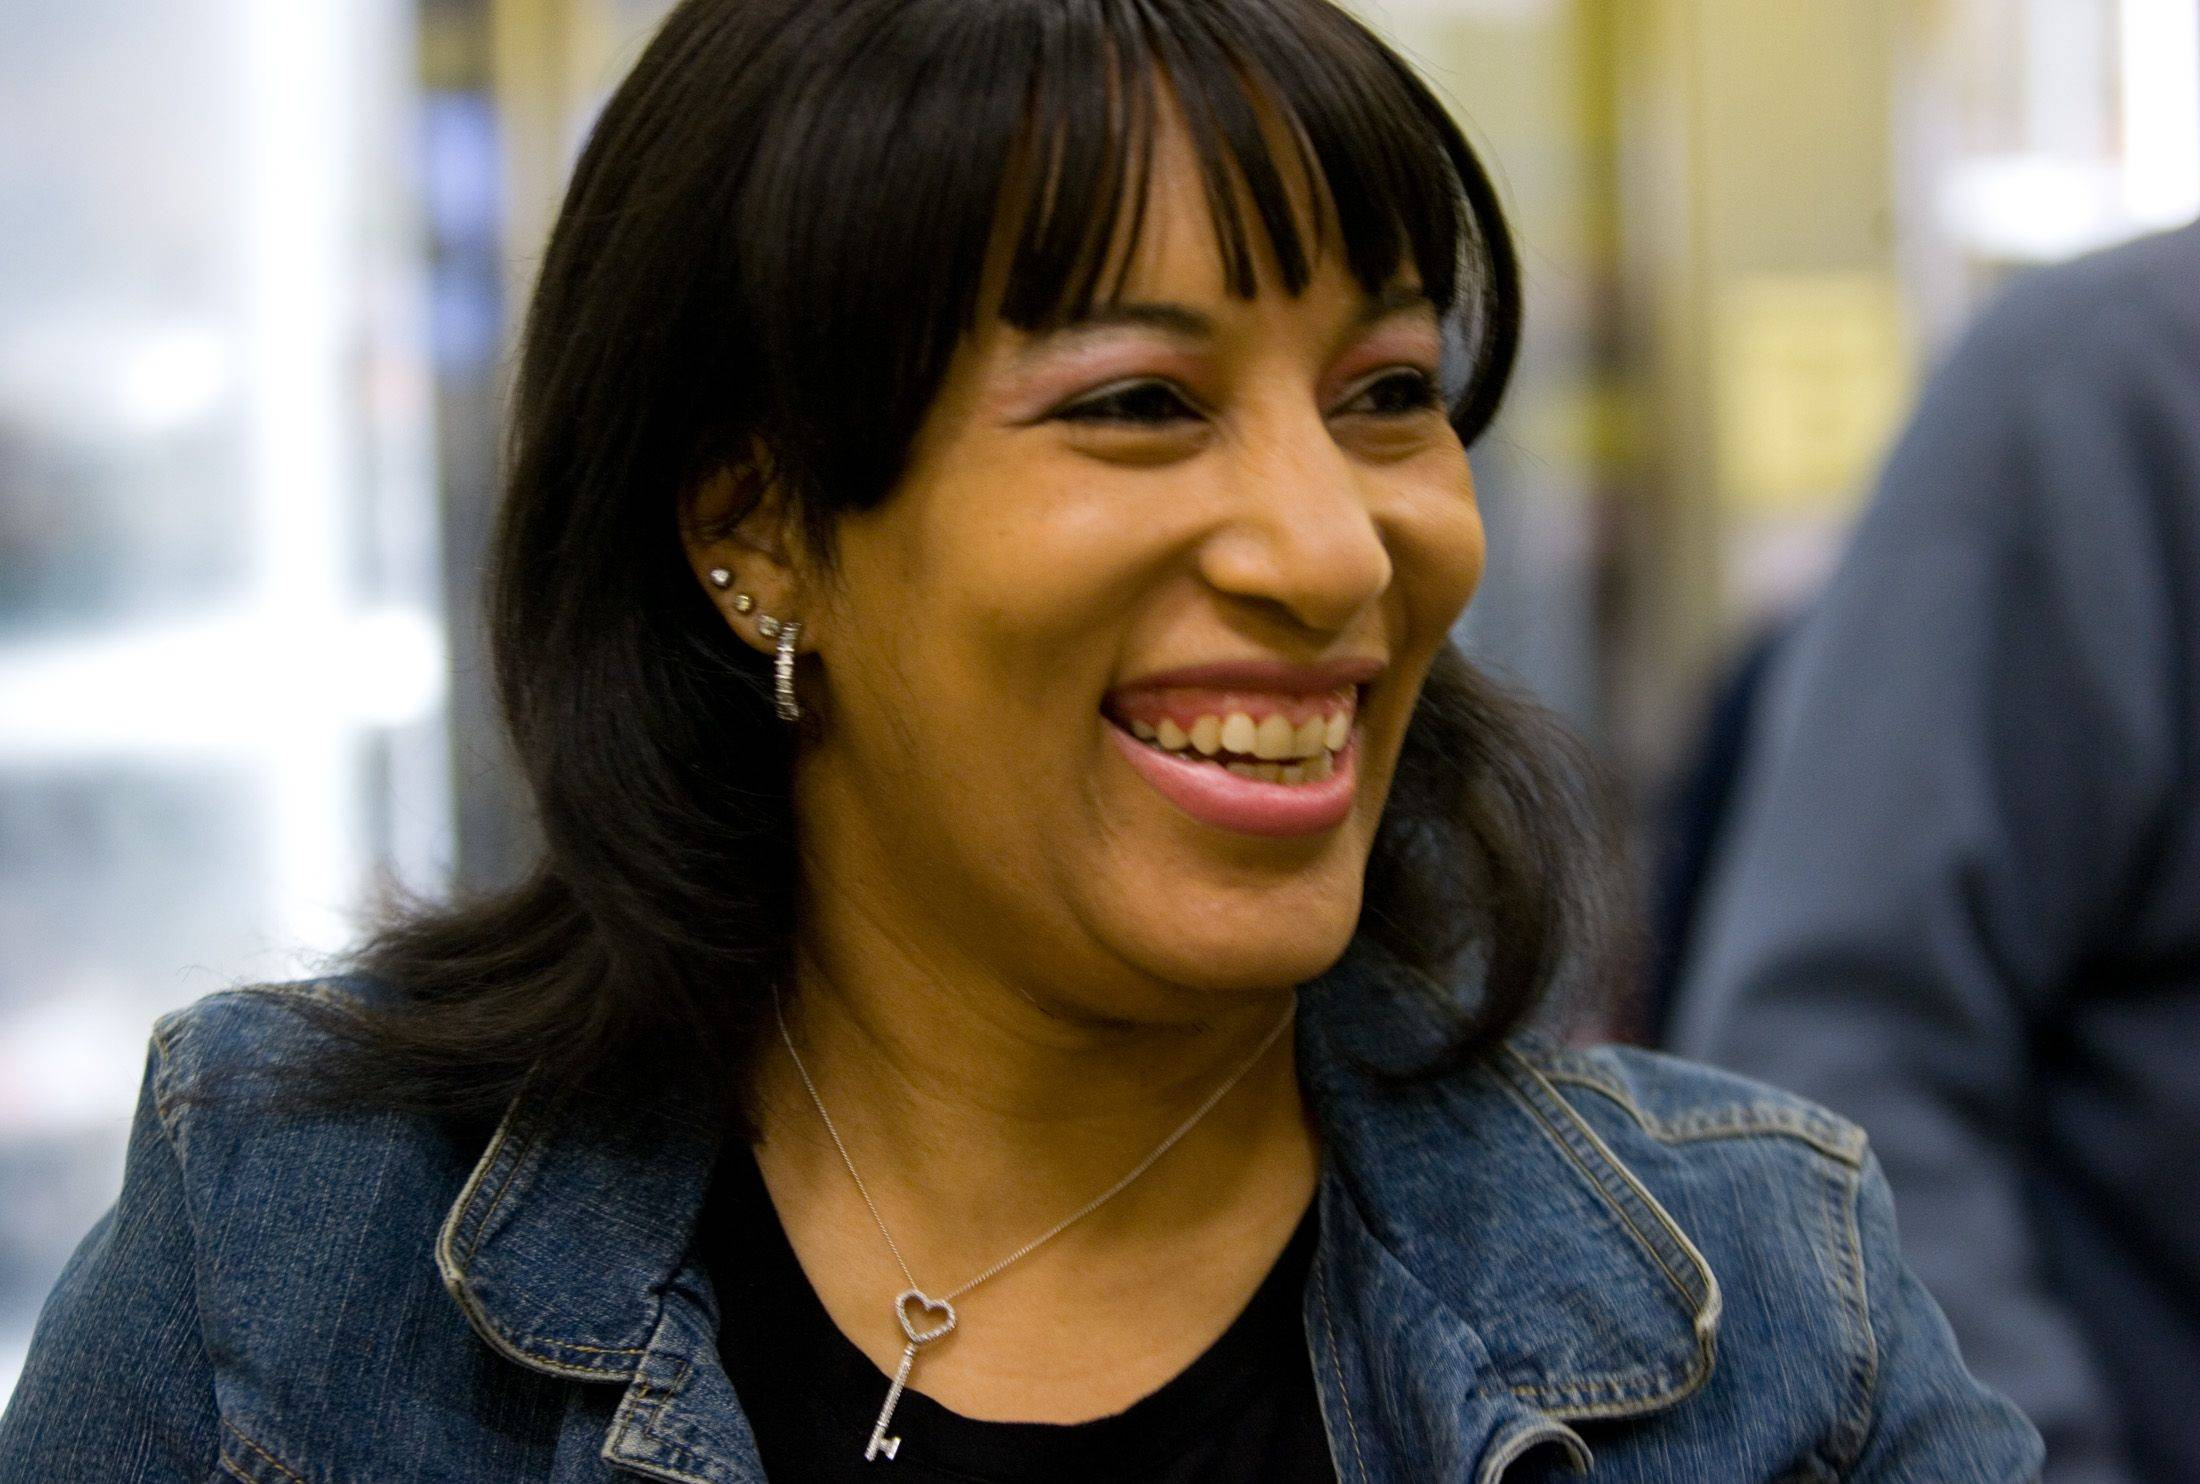 From Naperville to Elgin, our neighbors are in need